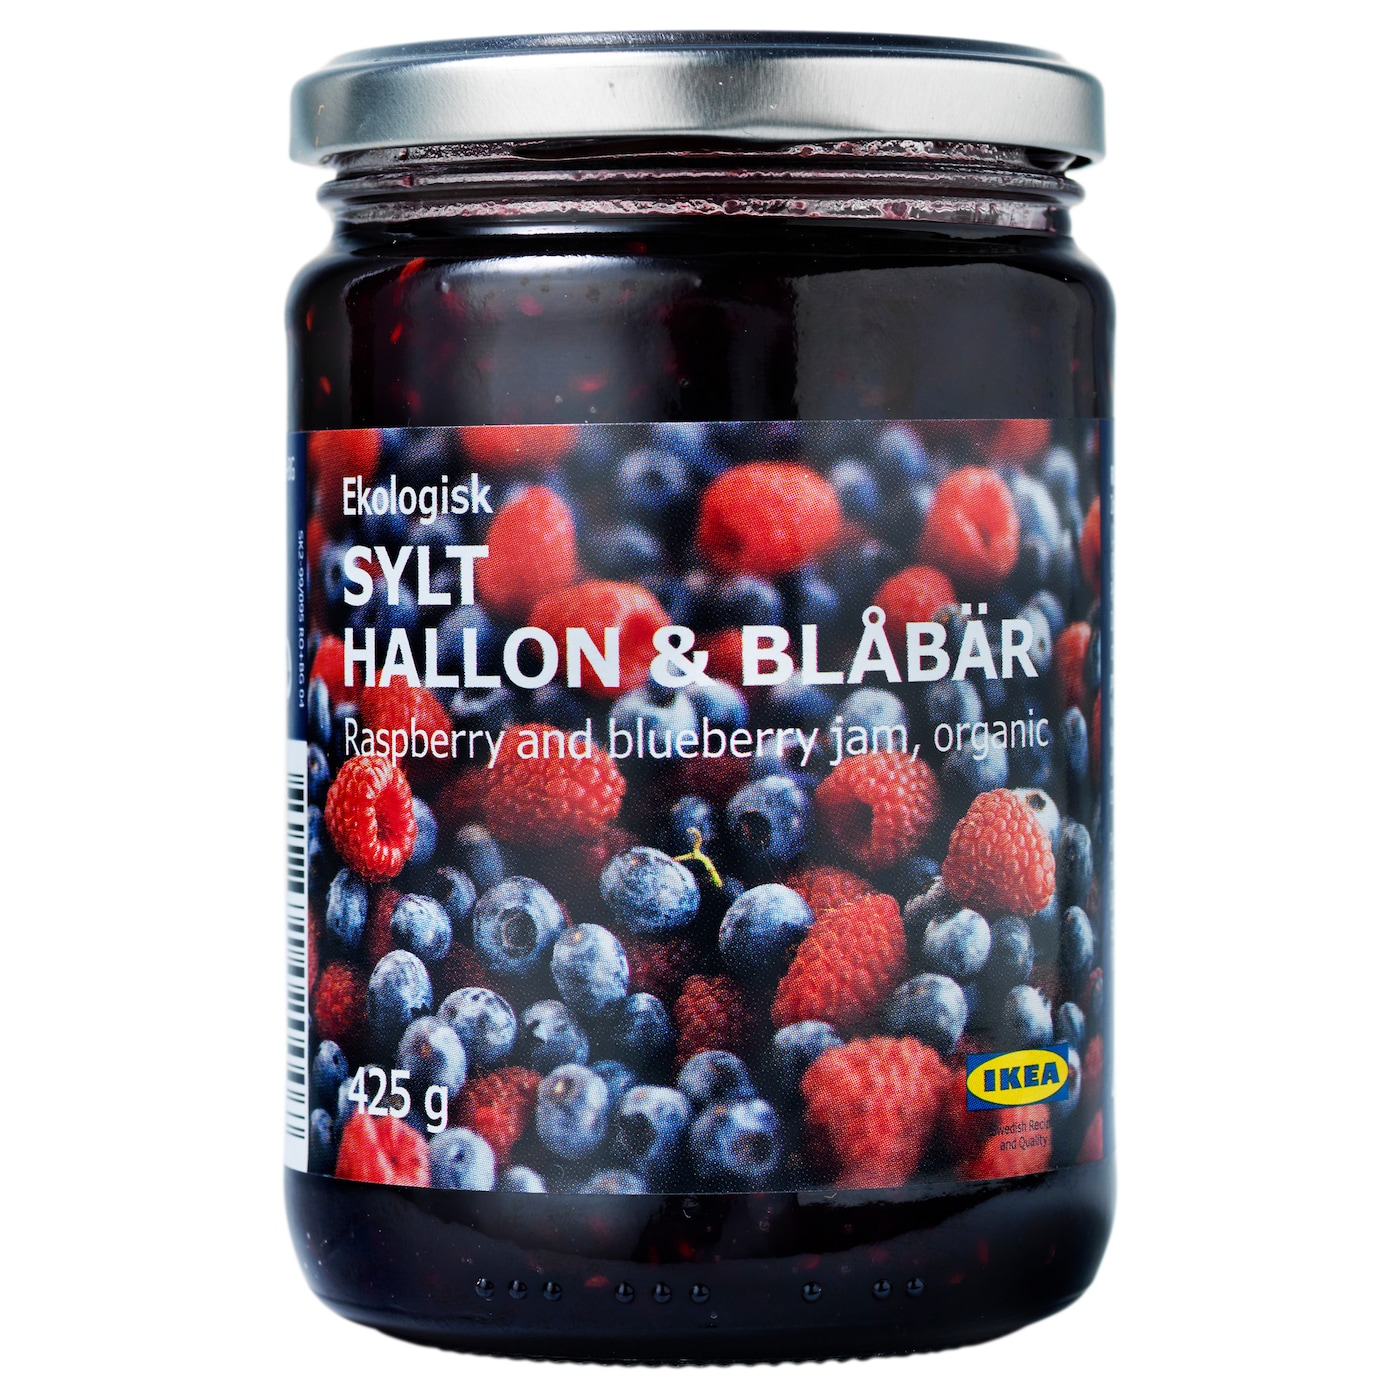 IKEA SYLT HALLON & BLÅBÄR rasp- and blueberry jam